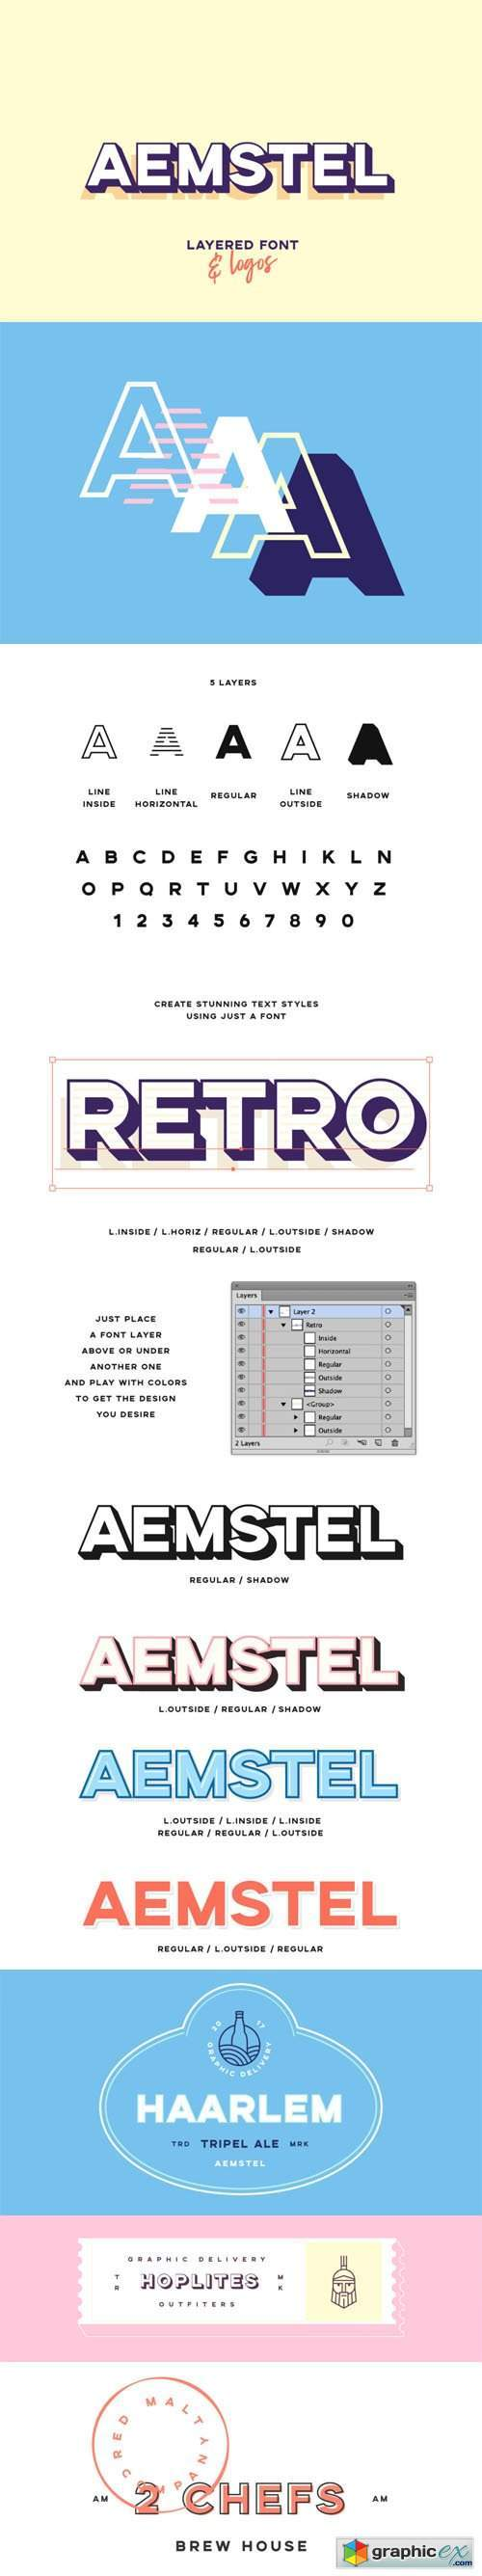 Aemstel Layered Font [5-Weights] + Vector Logos